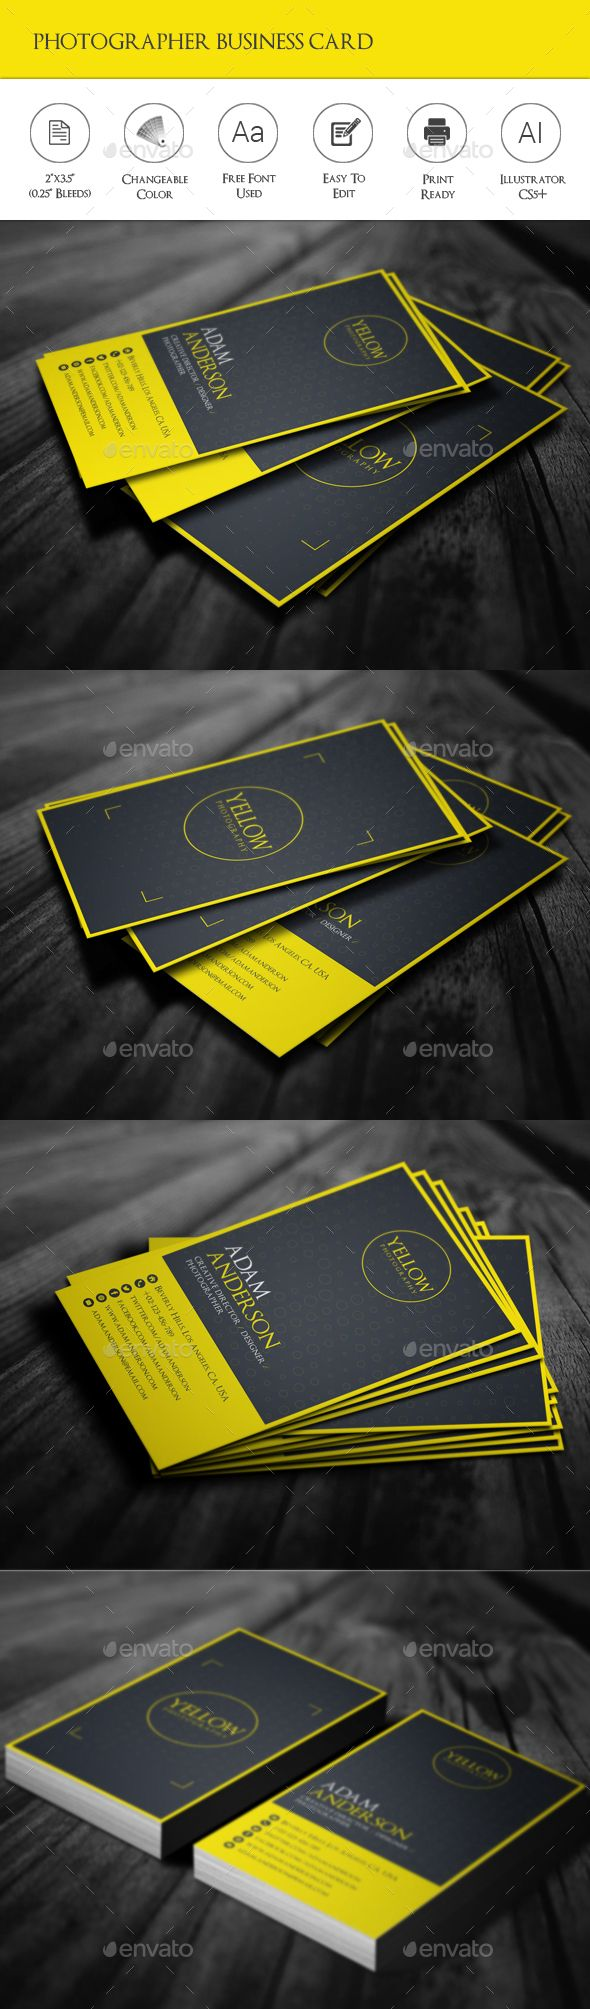 12 Best Photographer Business Cards Images On Pinterest Business